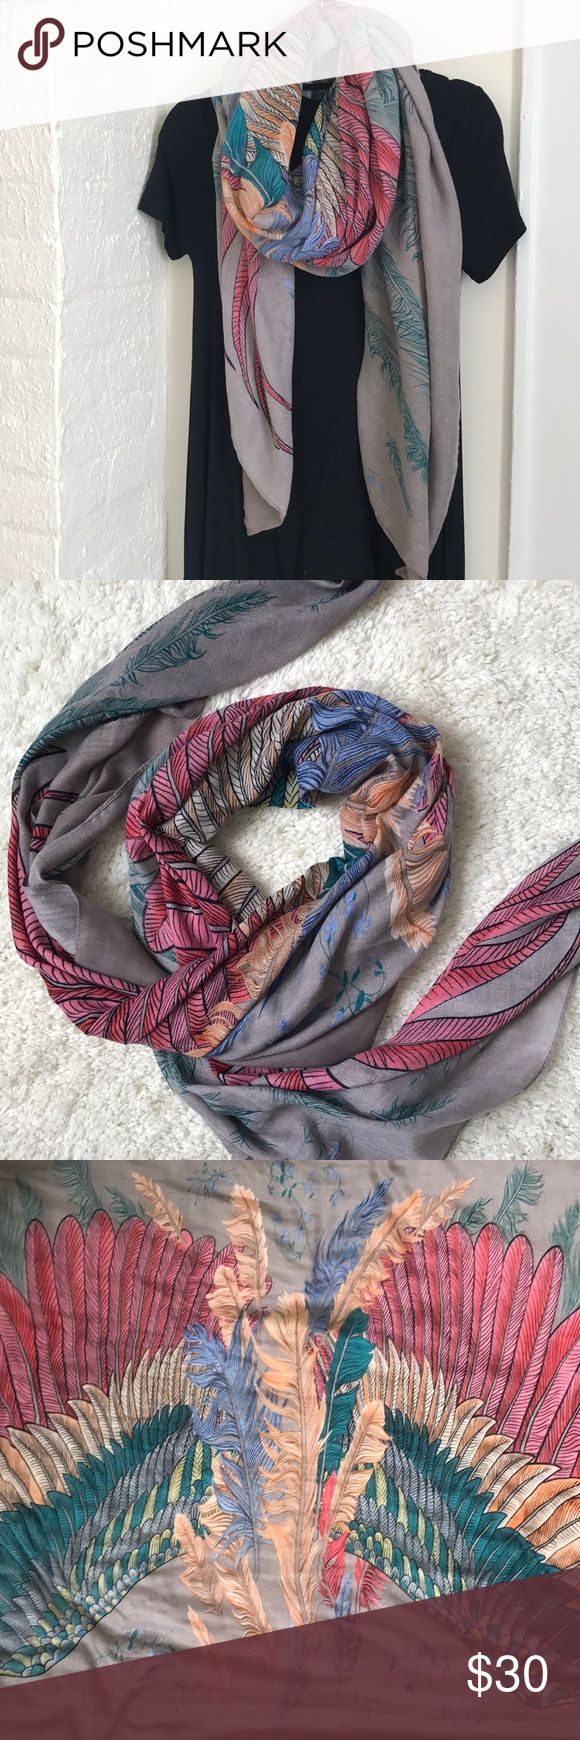 Beautiful Feather Blanket Scarf Feather Blanket Scarf - grayish taupe color with pinks blues and orange feather details with black outlines - some minor pulls in fabric from wear that are not noticeable when wearing but otherwise in good condition - purchased from a local boutique Accessories Scarves & Wraps